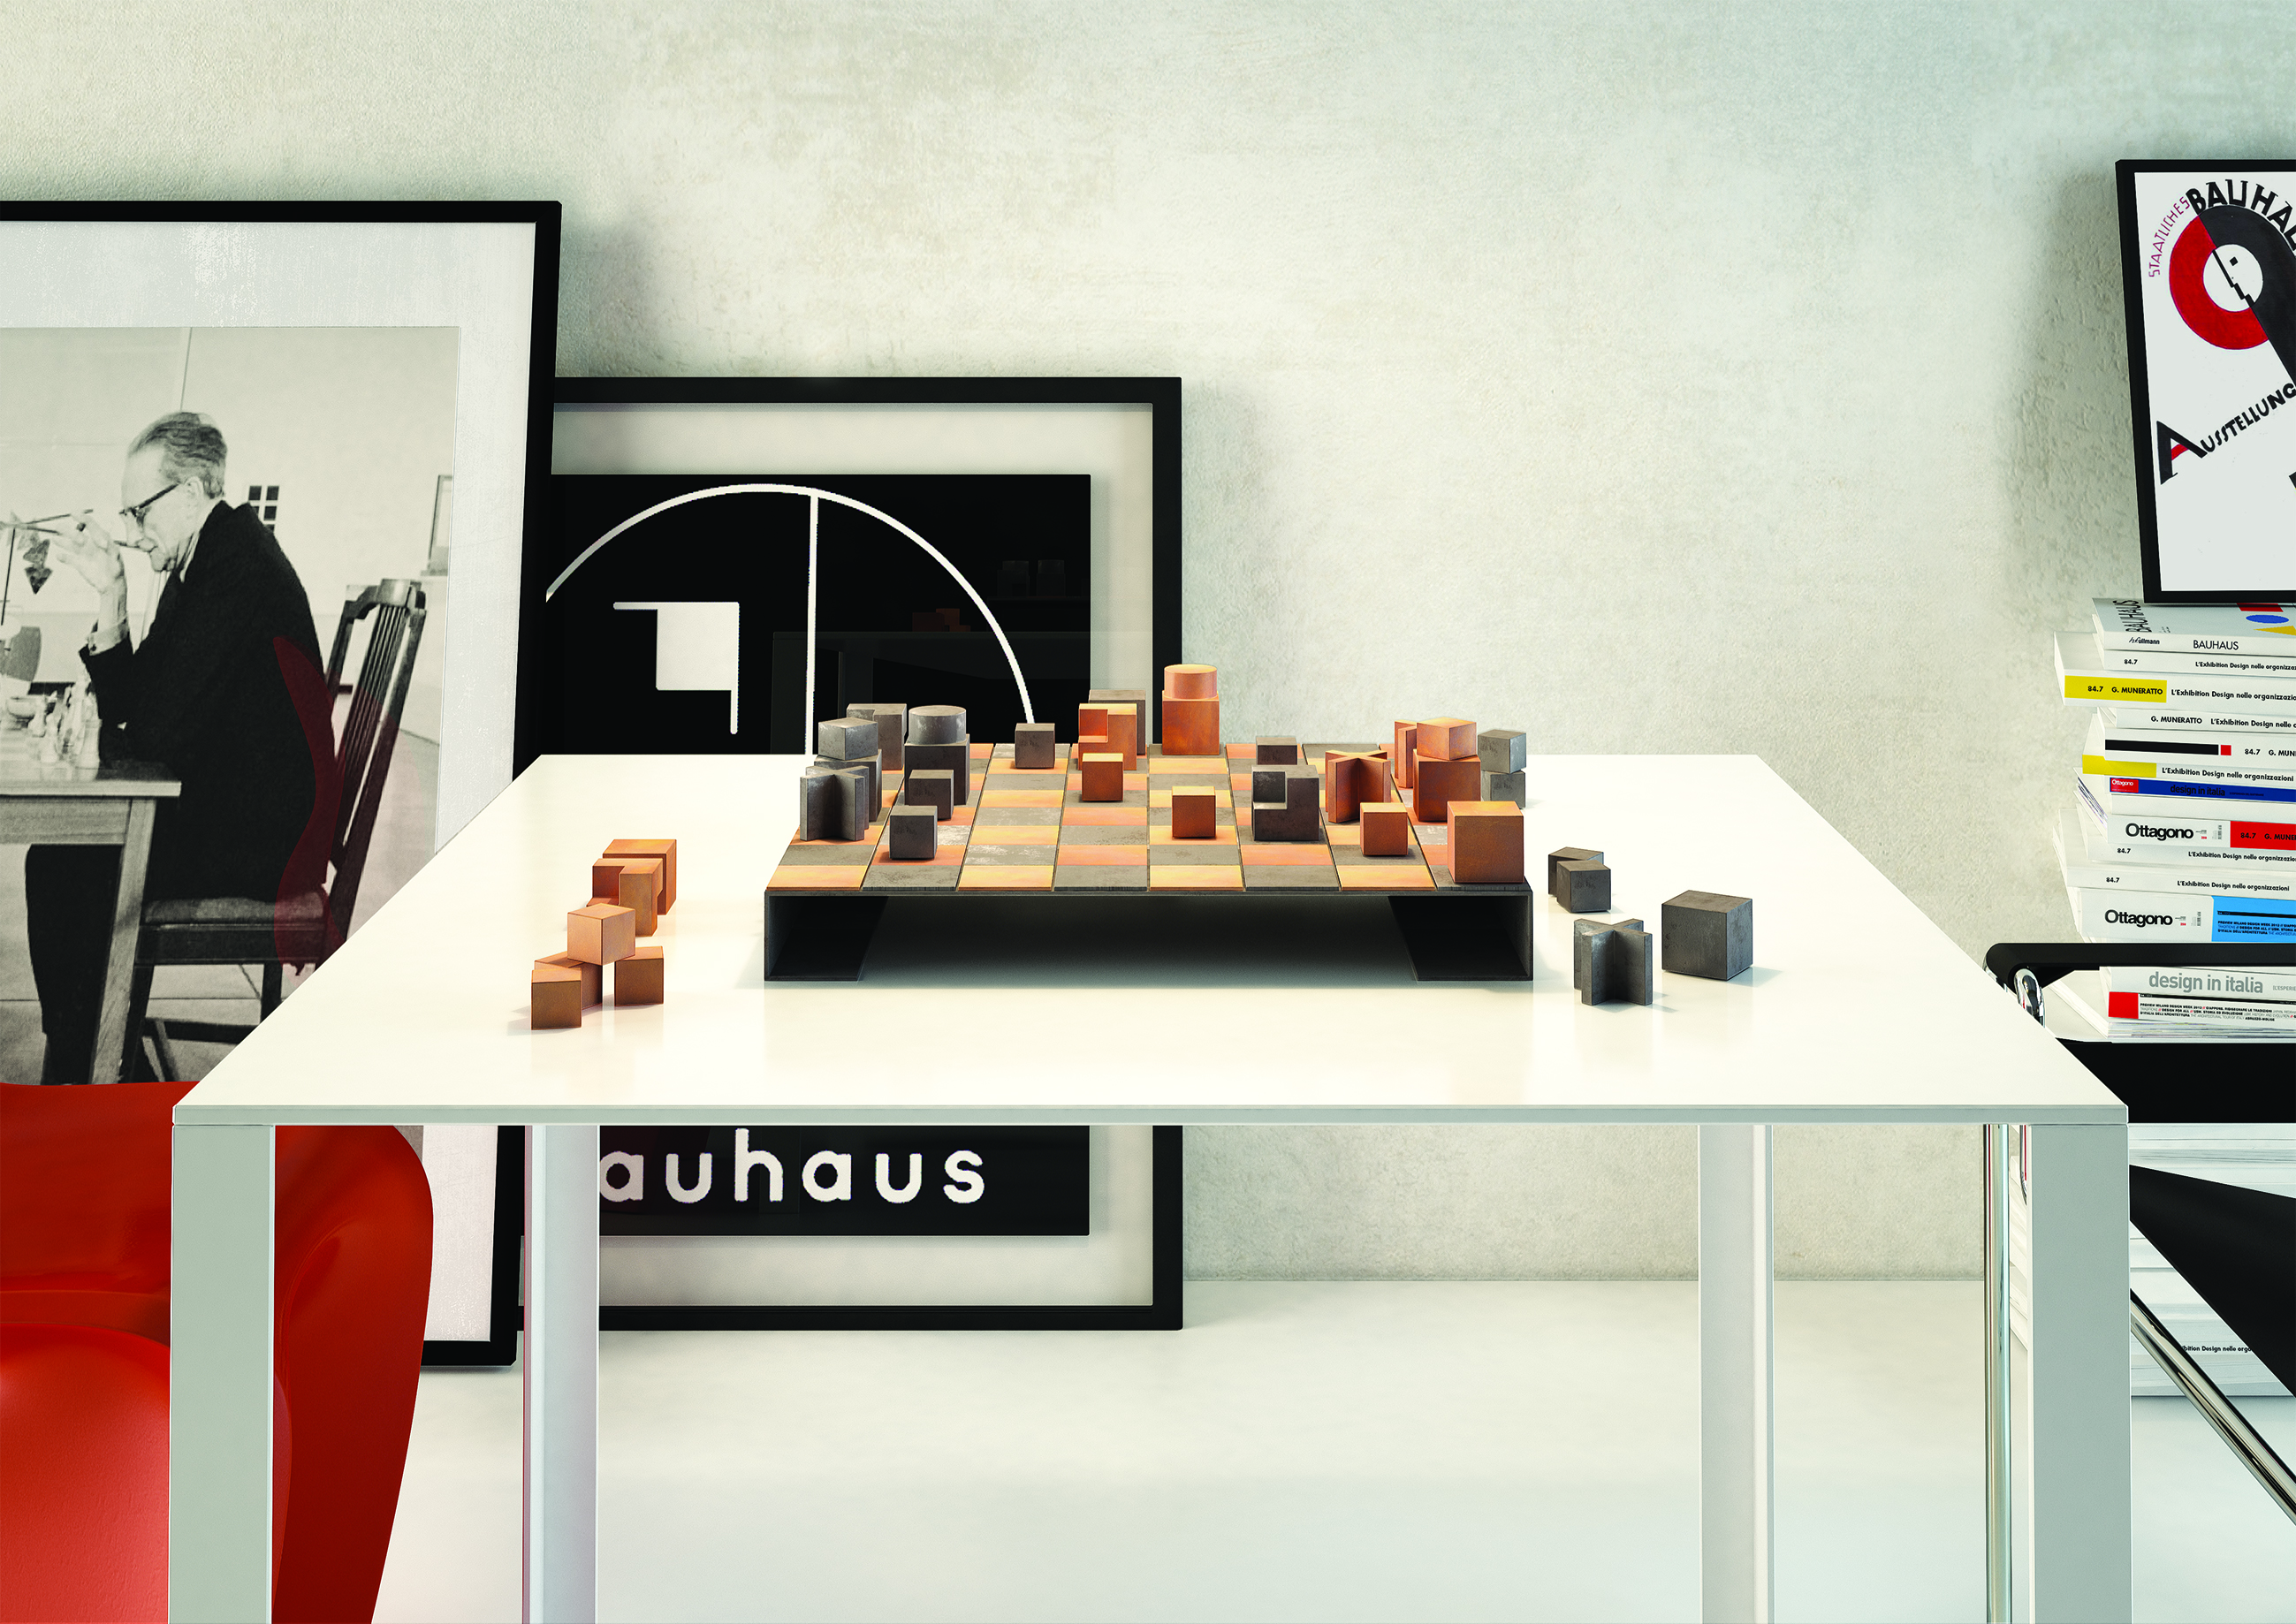 J. Hartwig, Chessboard of Bauhaus, 1924, redesigned in metal by S. D'Amato, BNP, in 2016 (render by S. Albano)